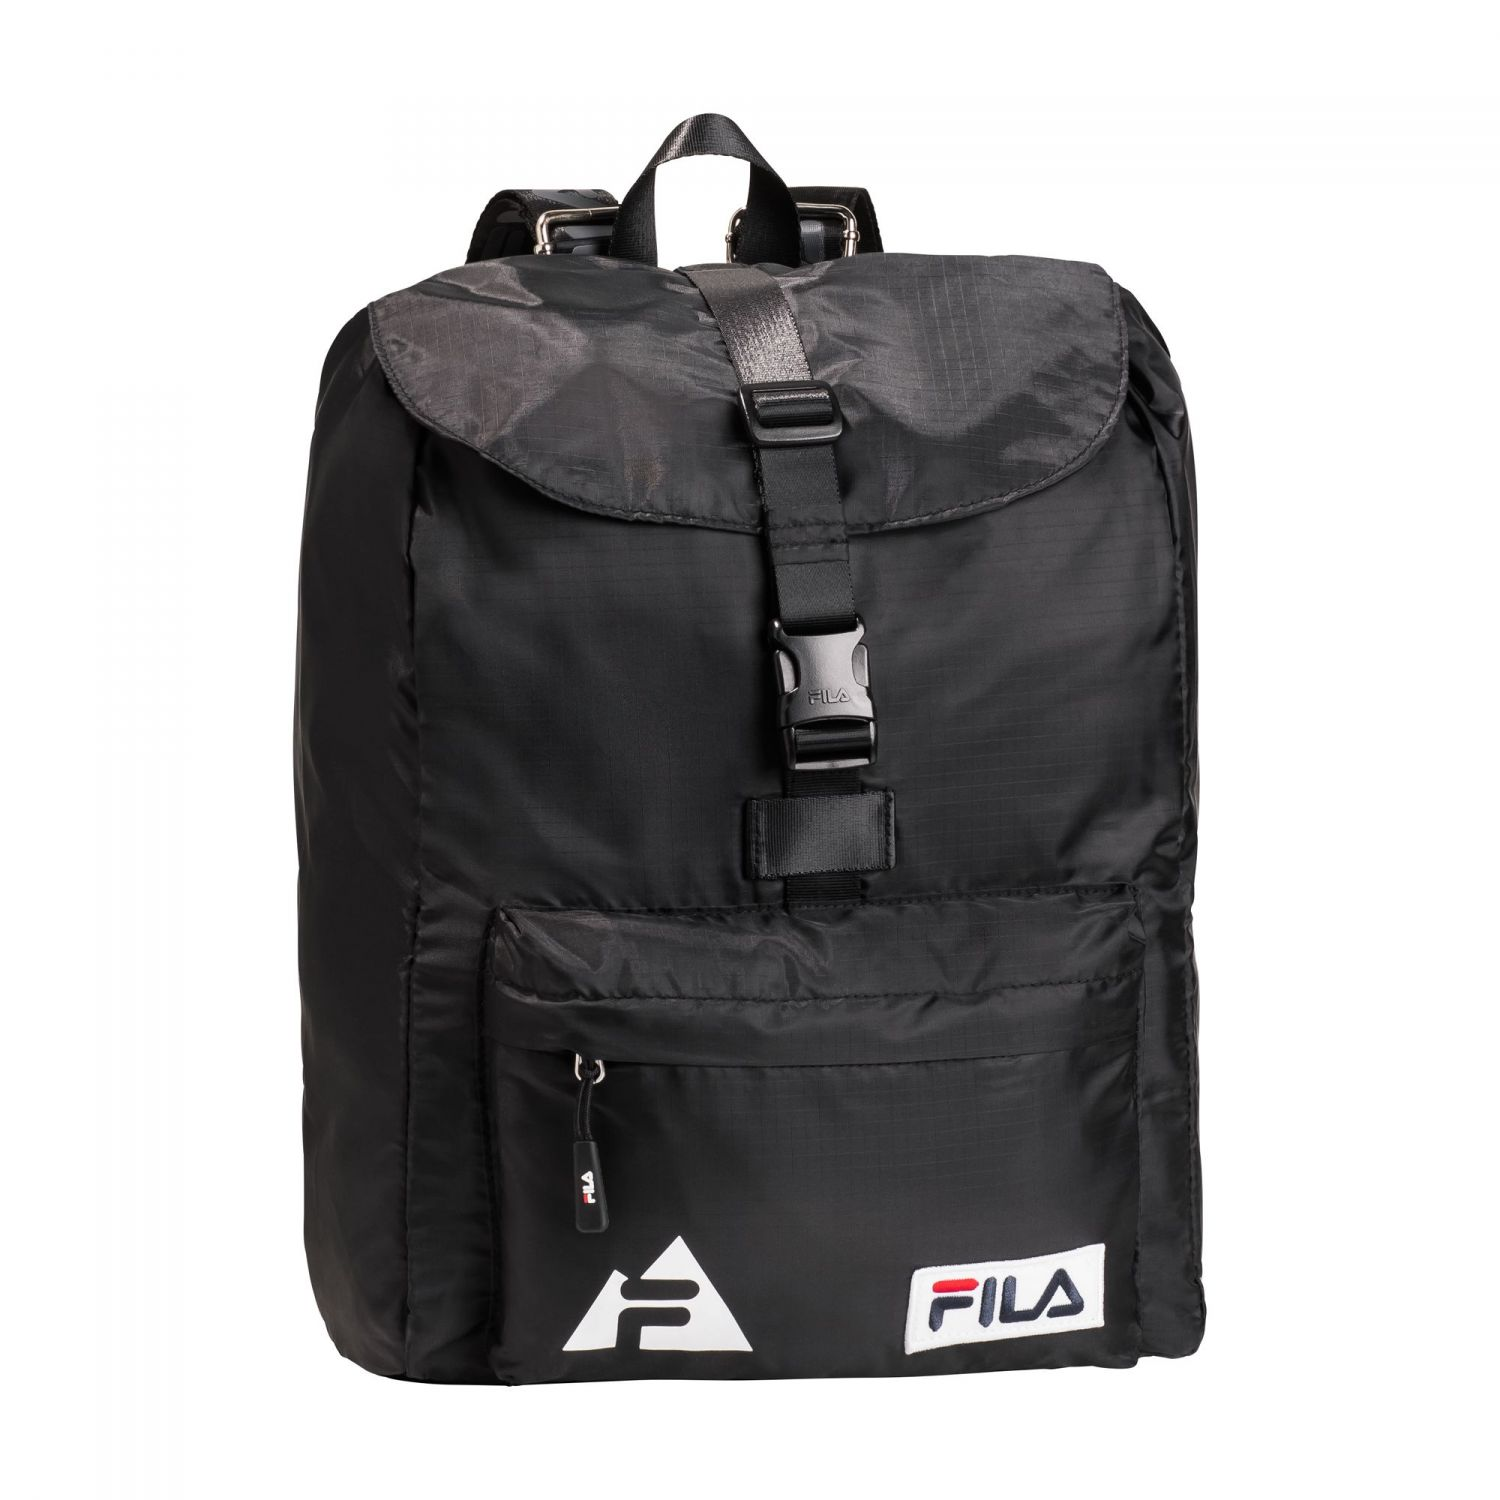 Fila - Backpack Stockholm - 00014201662586 - black